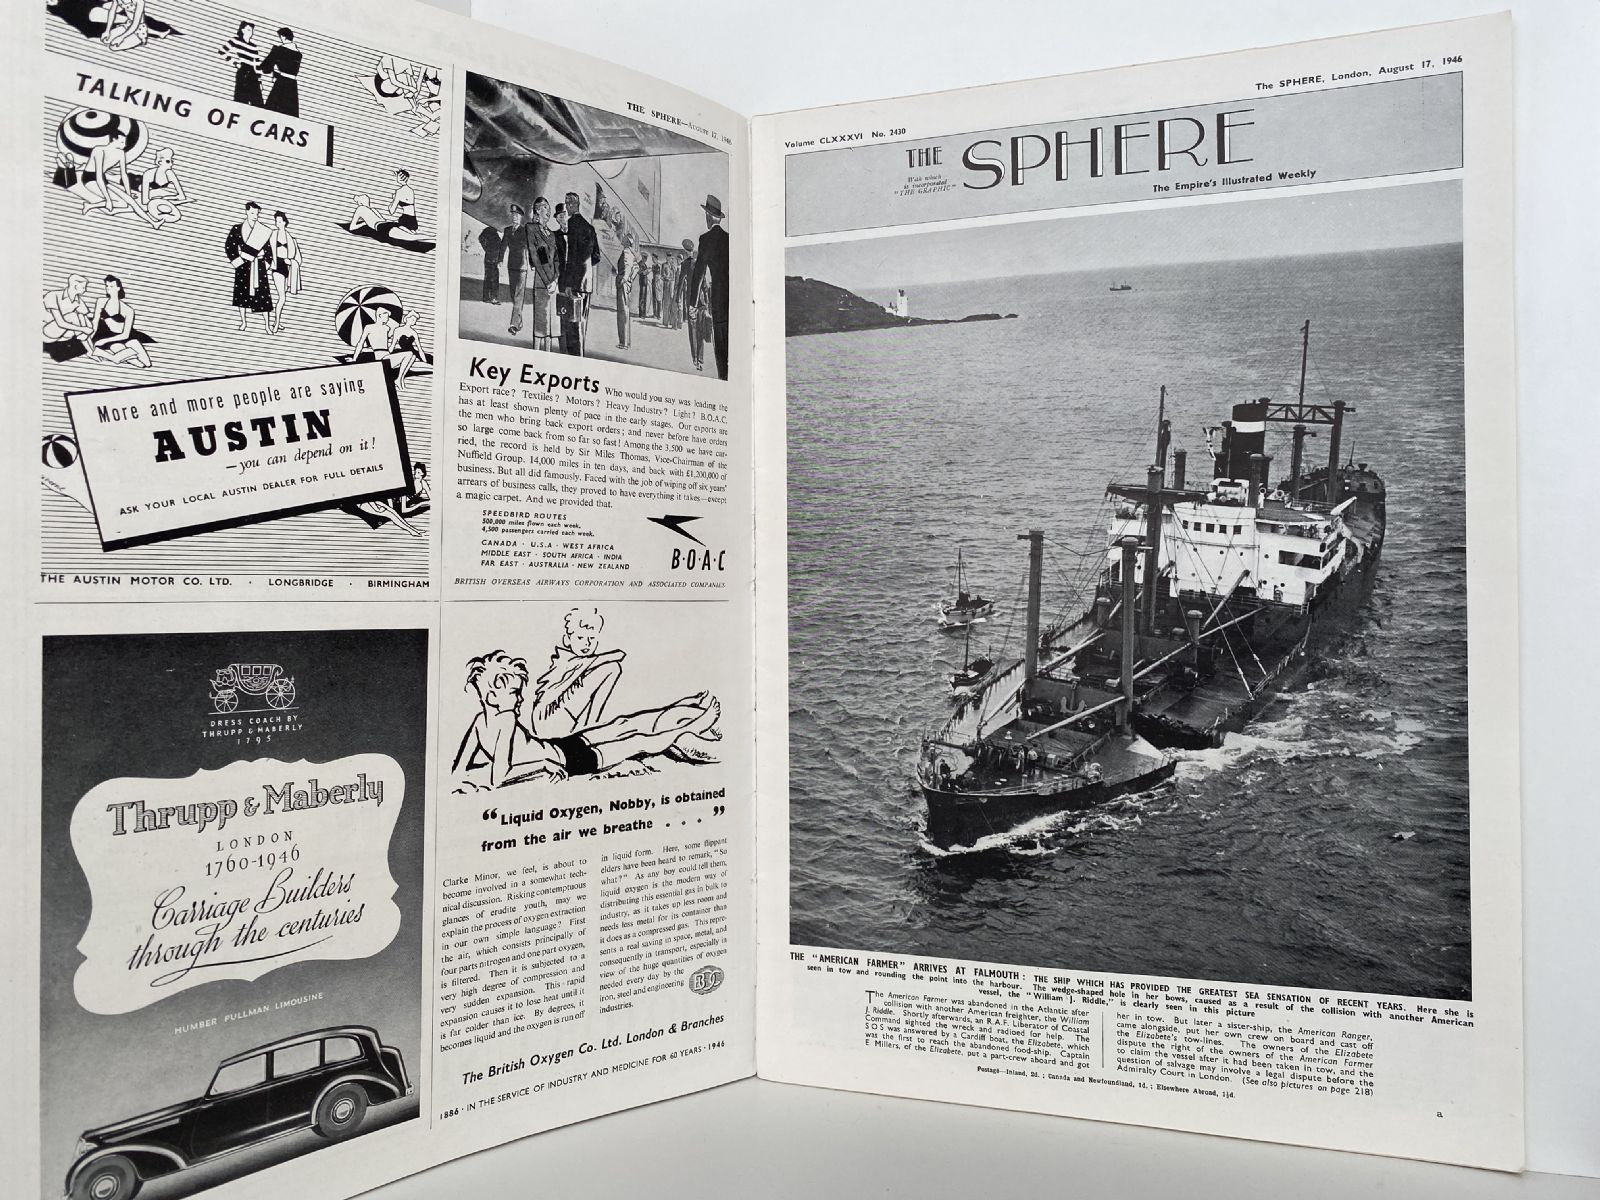 THE SPHERE The Empire's Illustrated Weekly. August 17, 1946. No. 2430